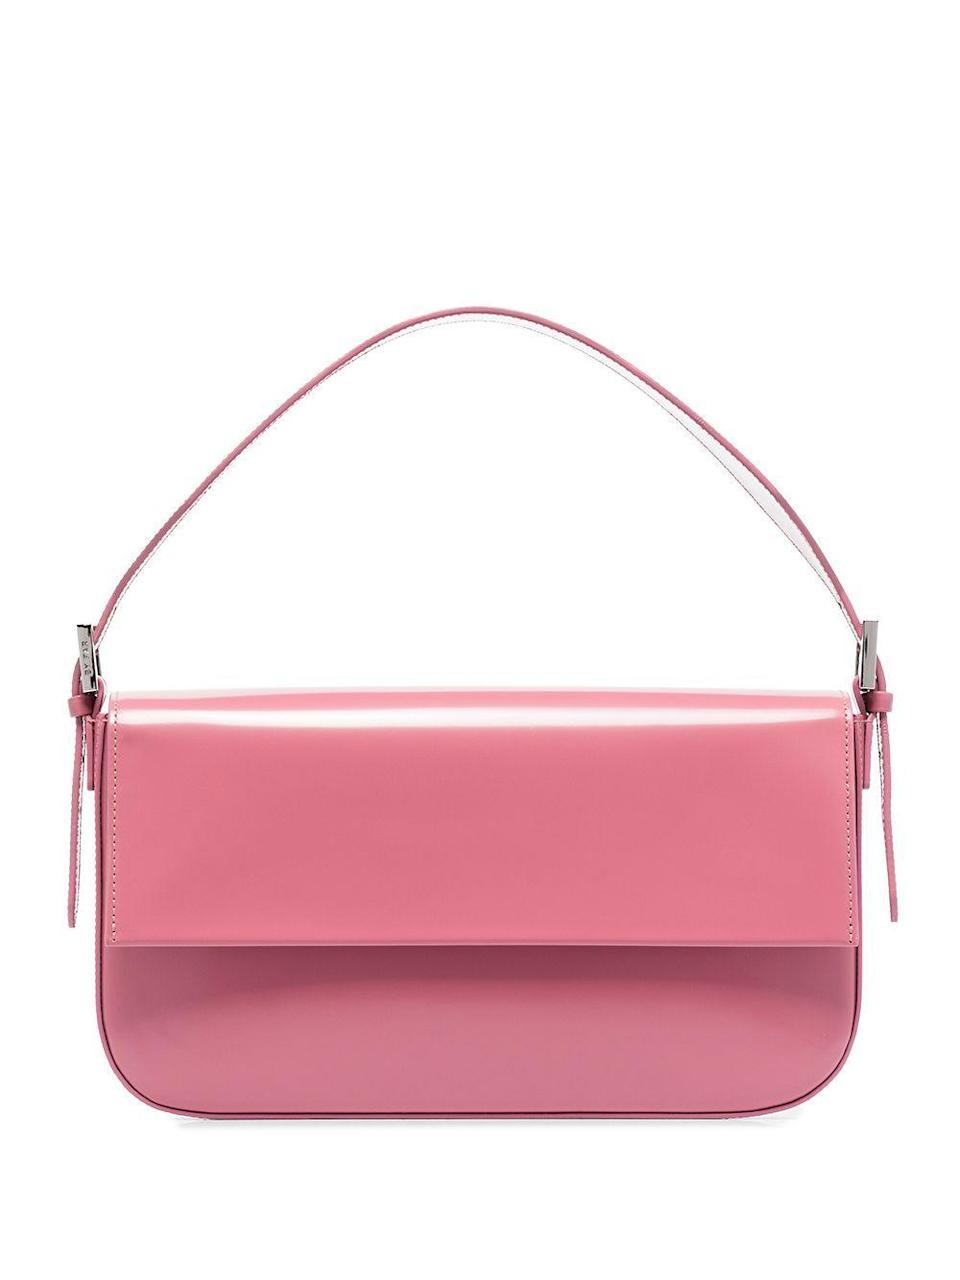 """<p><strong>BY FAR</strong></p><p>farfetch.com</p><p><strong>$555.00</strong></p><p><a href=""""https://go.redirectingat.com?id=74968X1596630&url=https%3A%2F%2Fwww.farfetch.com%2Fshopping%2Fwomen%2Fby-far-manu-leather-shoulder-bag-item-15597252.aspx&sref=https%3A%2F%2Fwww.harpersbazaar.com%2Ffashion%2Fg34046218%2Fspring-2021-bag-trends%2F"""" rel=""""nofollow noopener"""" target=""""_blank"""" data-ylk=""""slk:Shop Now"""" class=""""link rapid-noclick-resp"""">Shop Now</a></p><p>The shoulder bag is here to stay, have fun with it.</p>"""